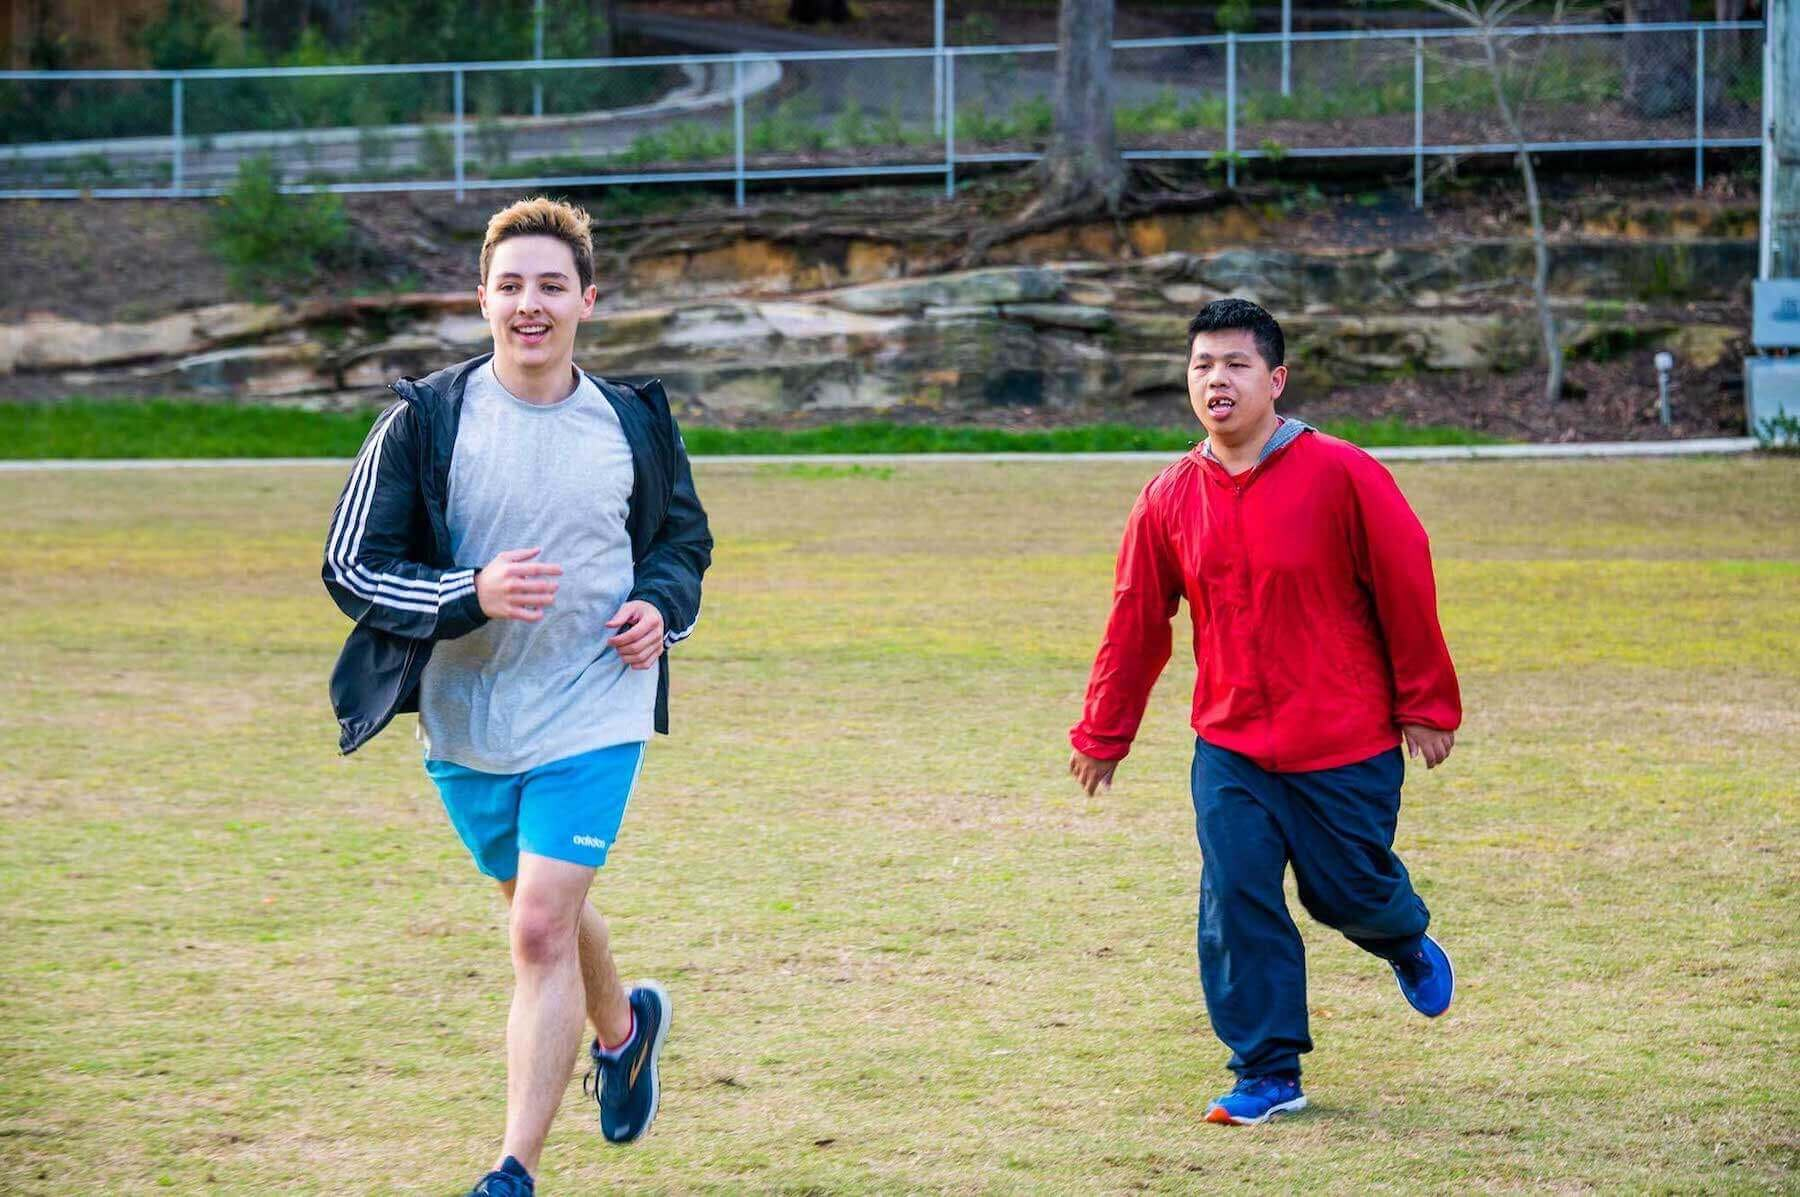 Two men running on grass in exercise clothes.